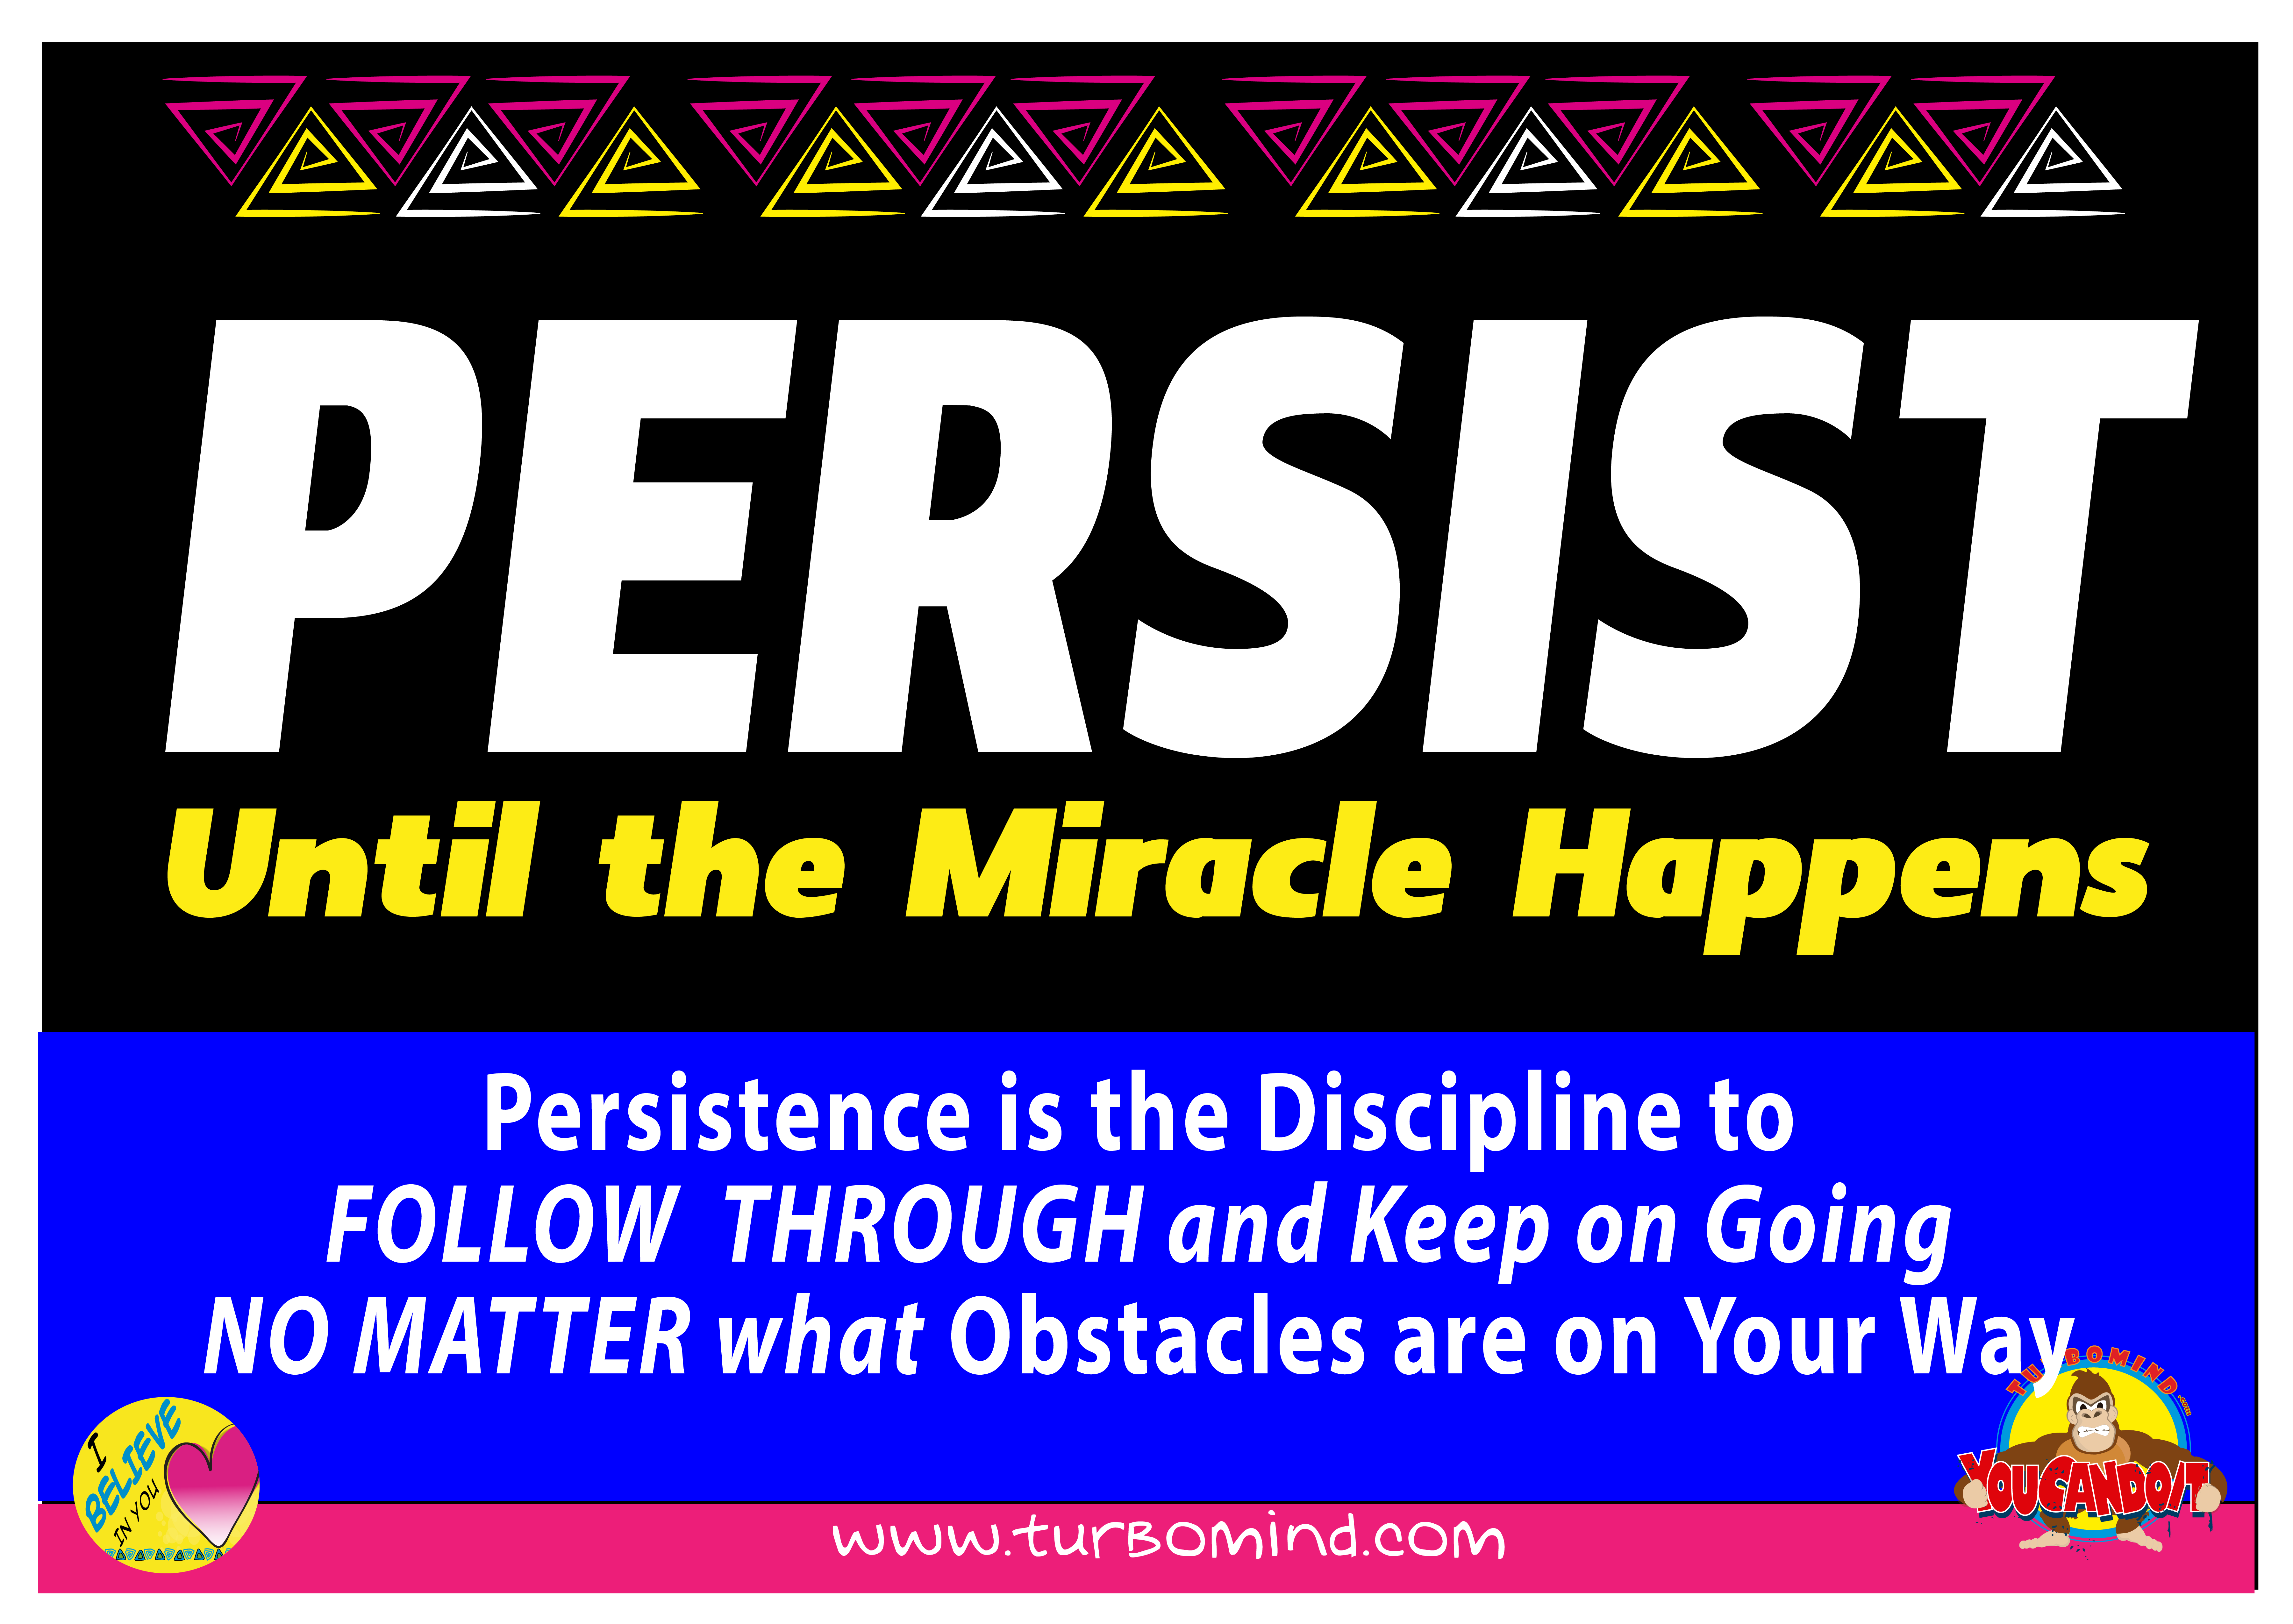 Persists Until the Miracle Happens!